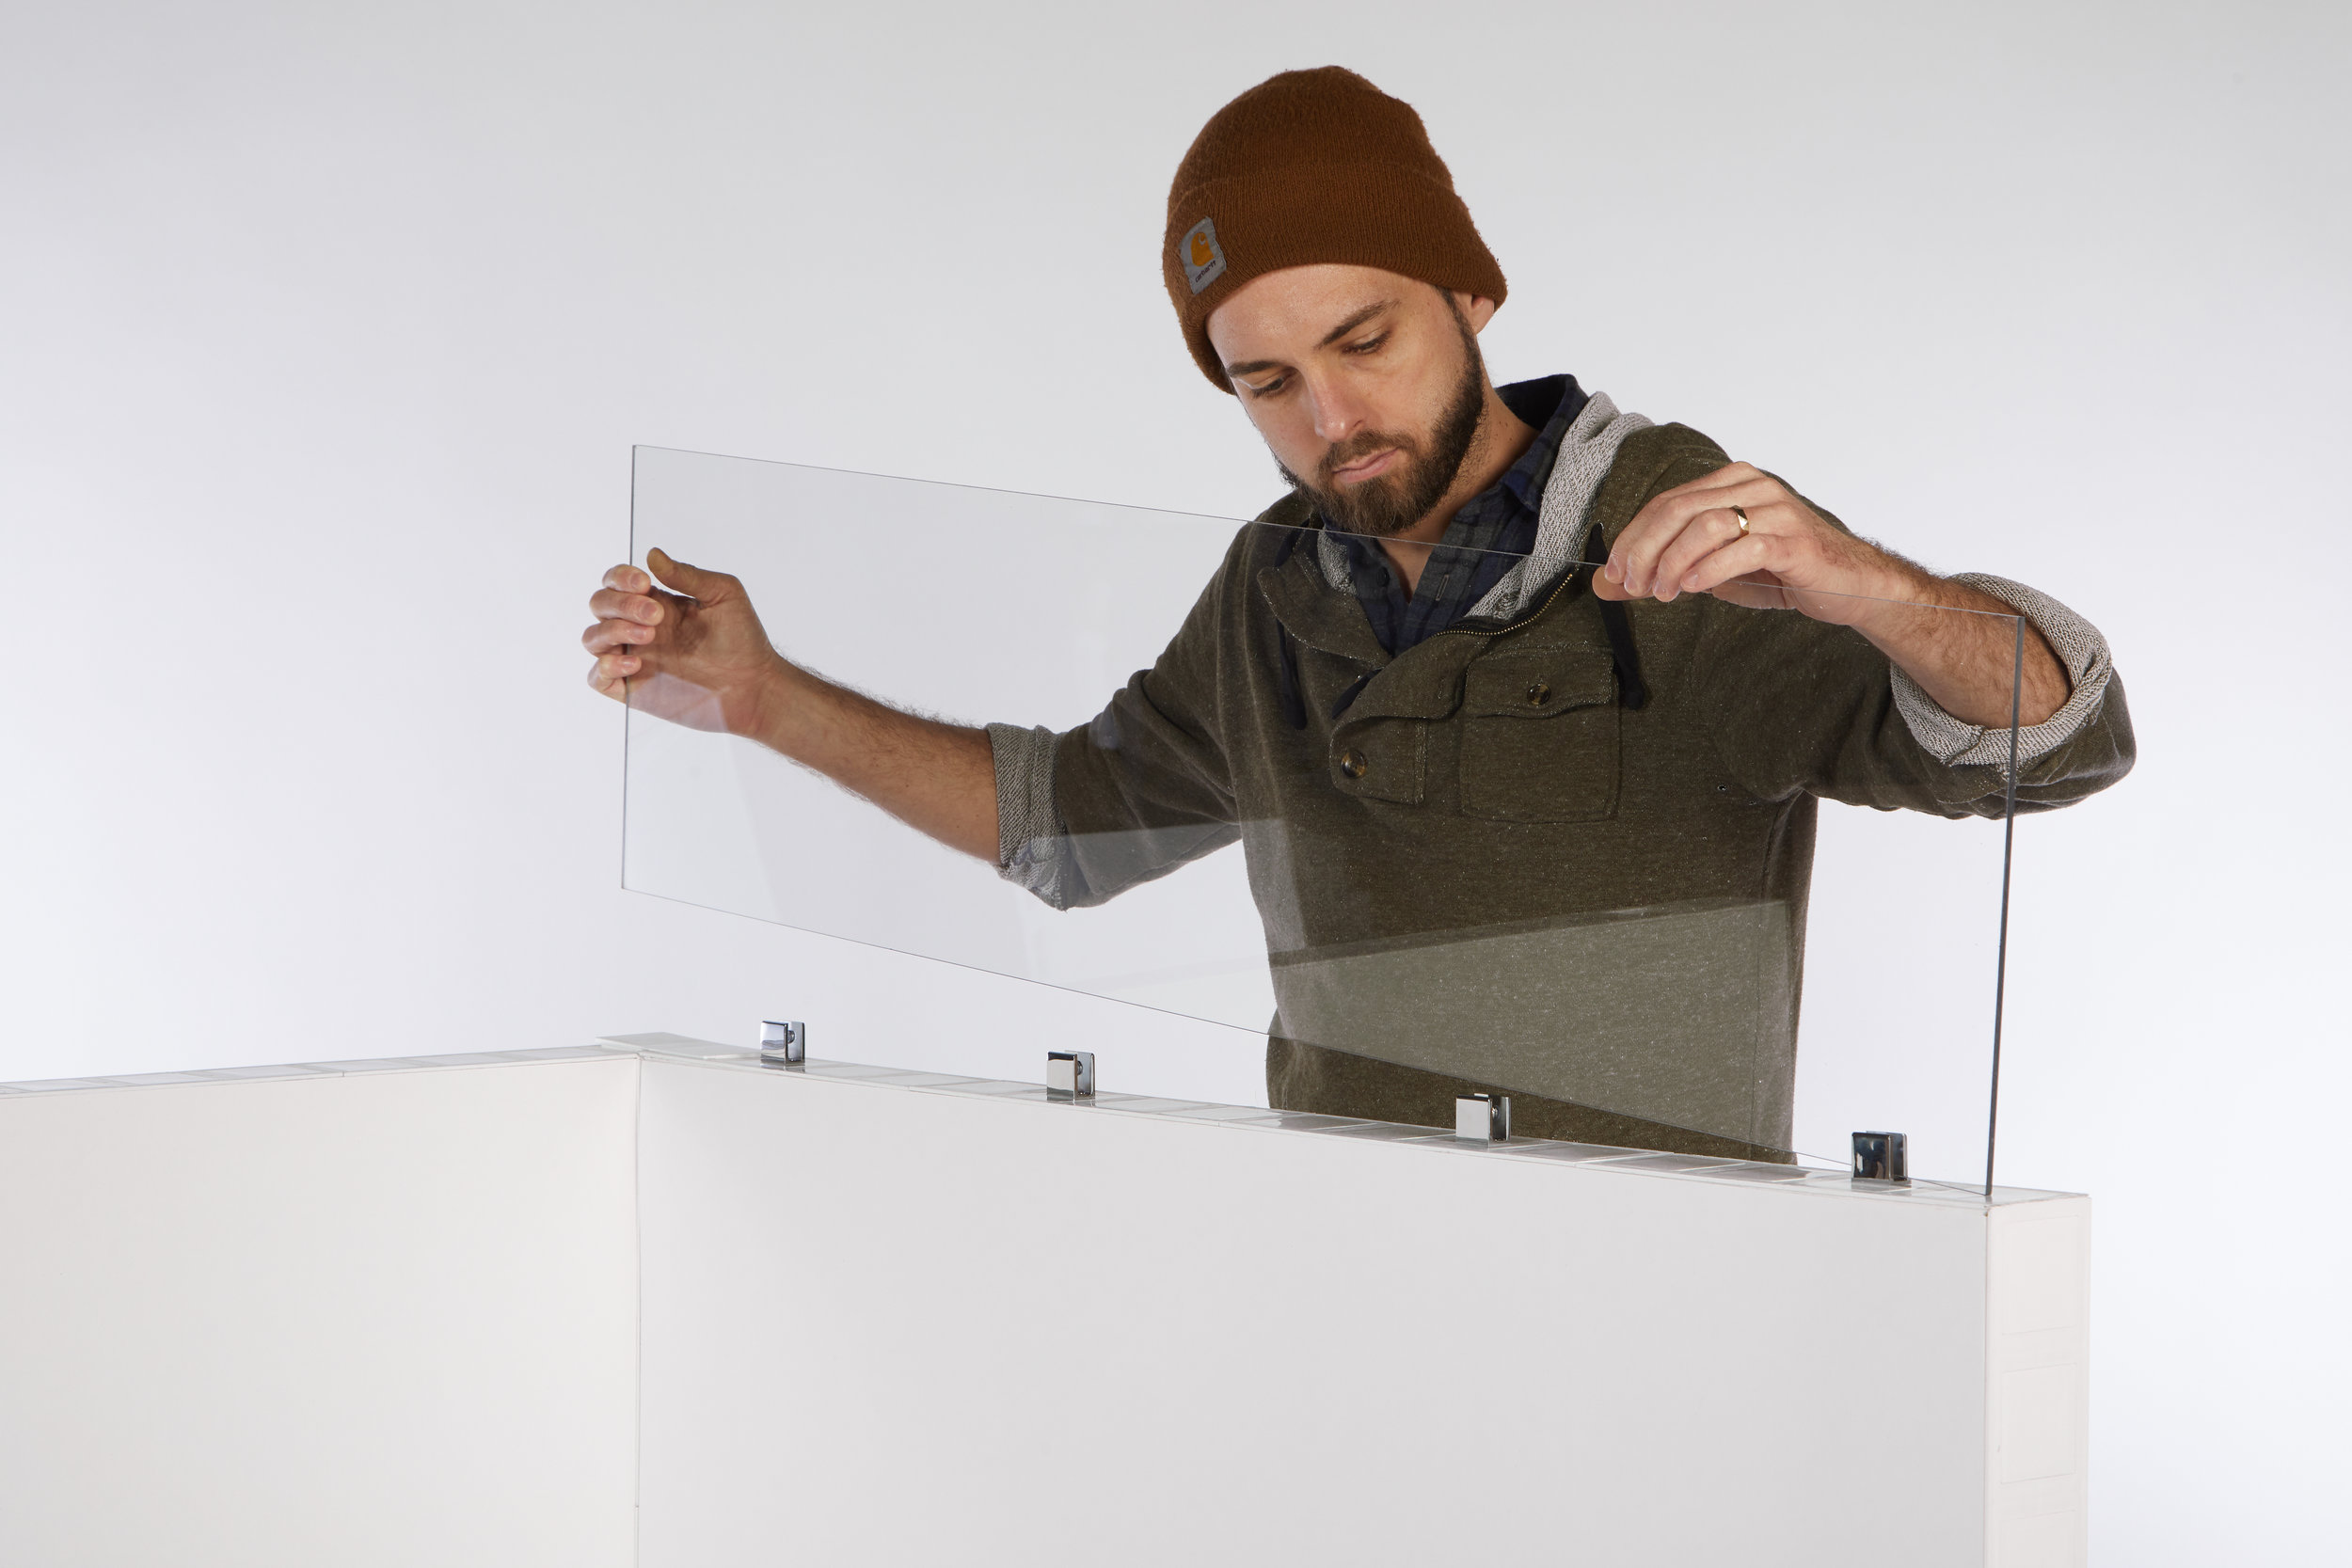 Inserting a clear window panel into Mounting Caps